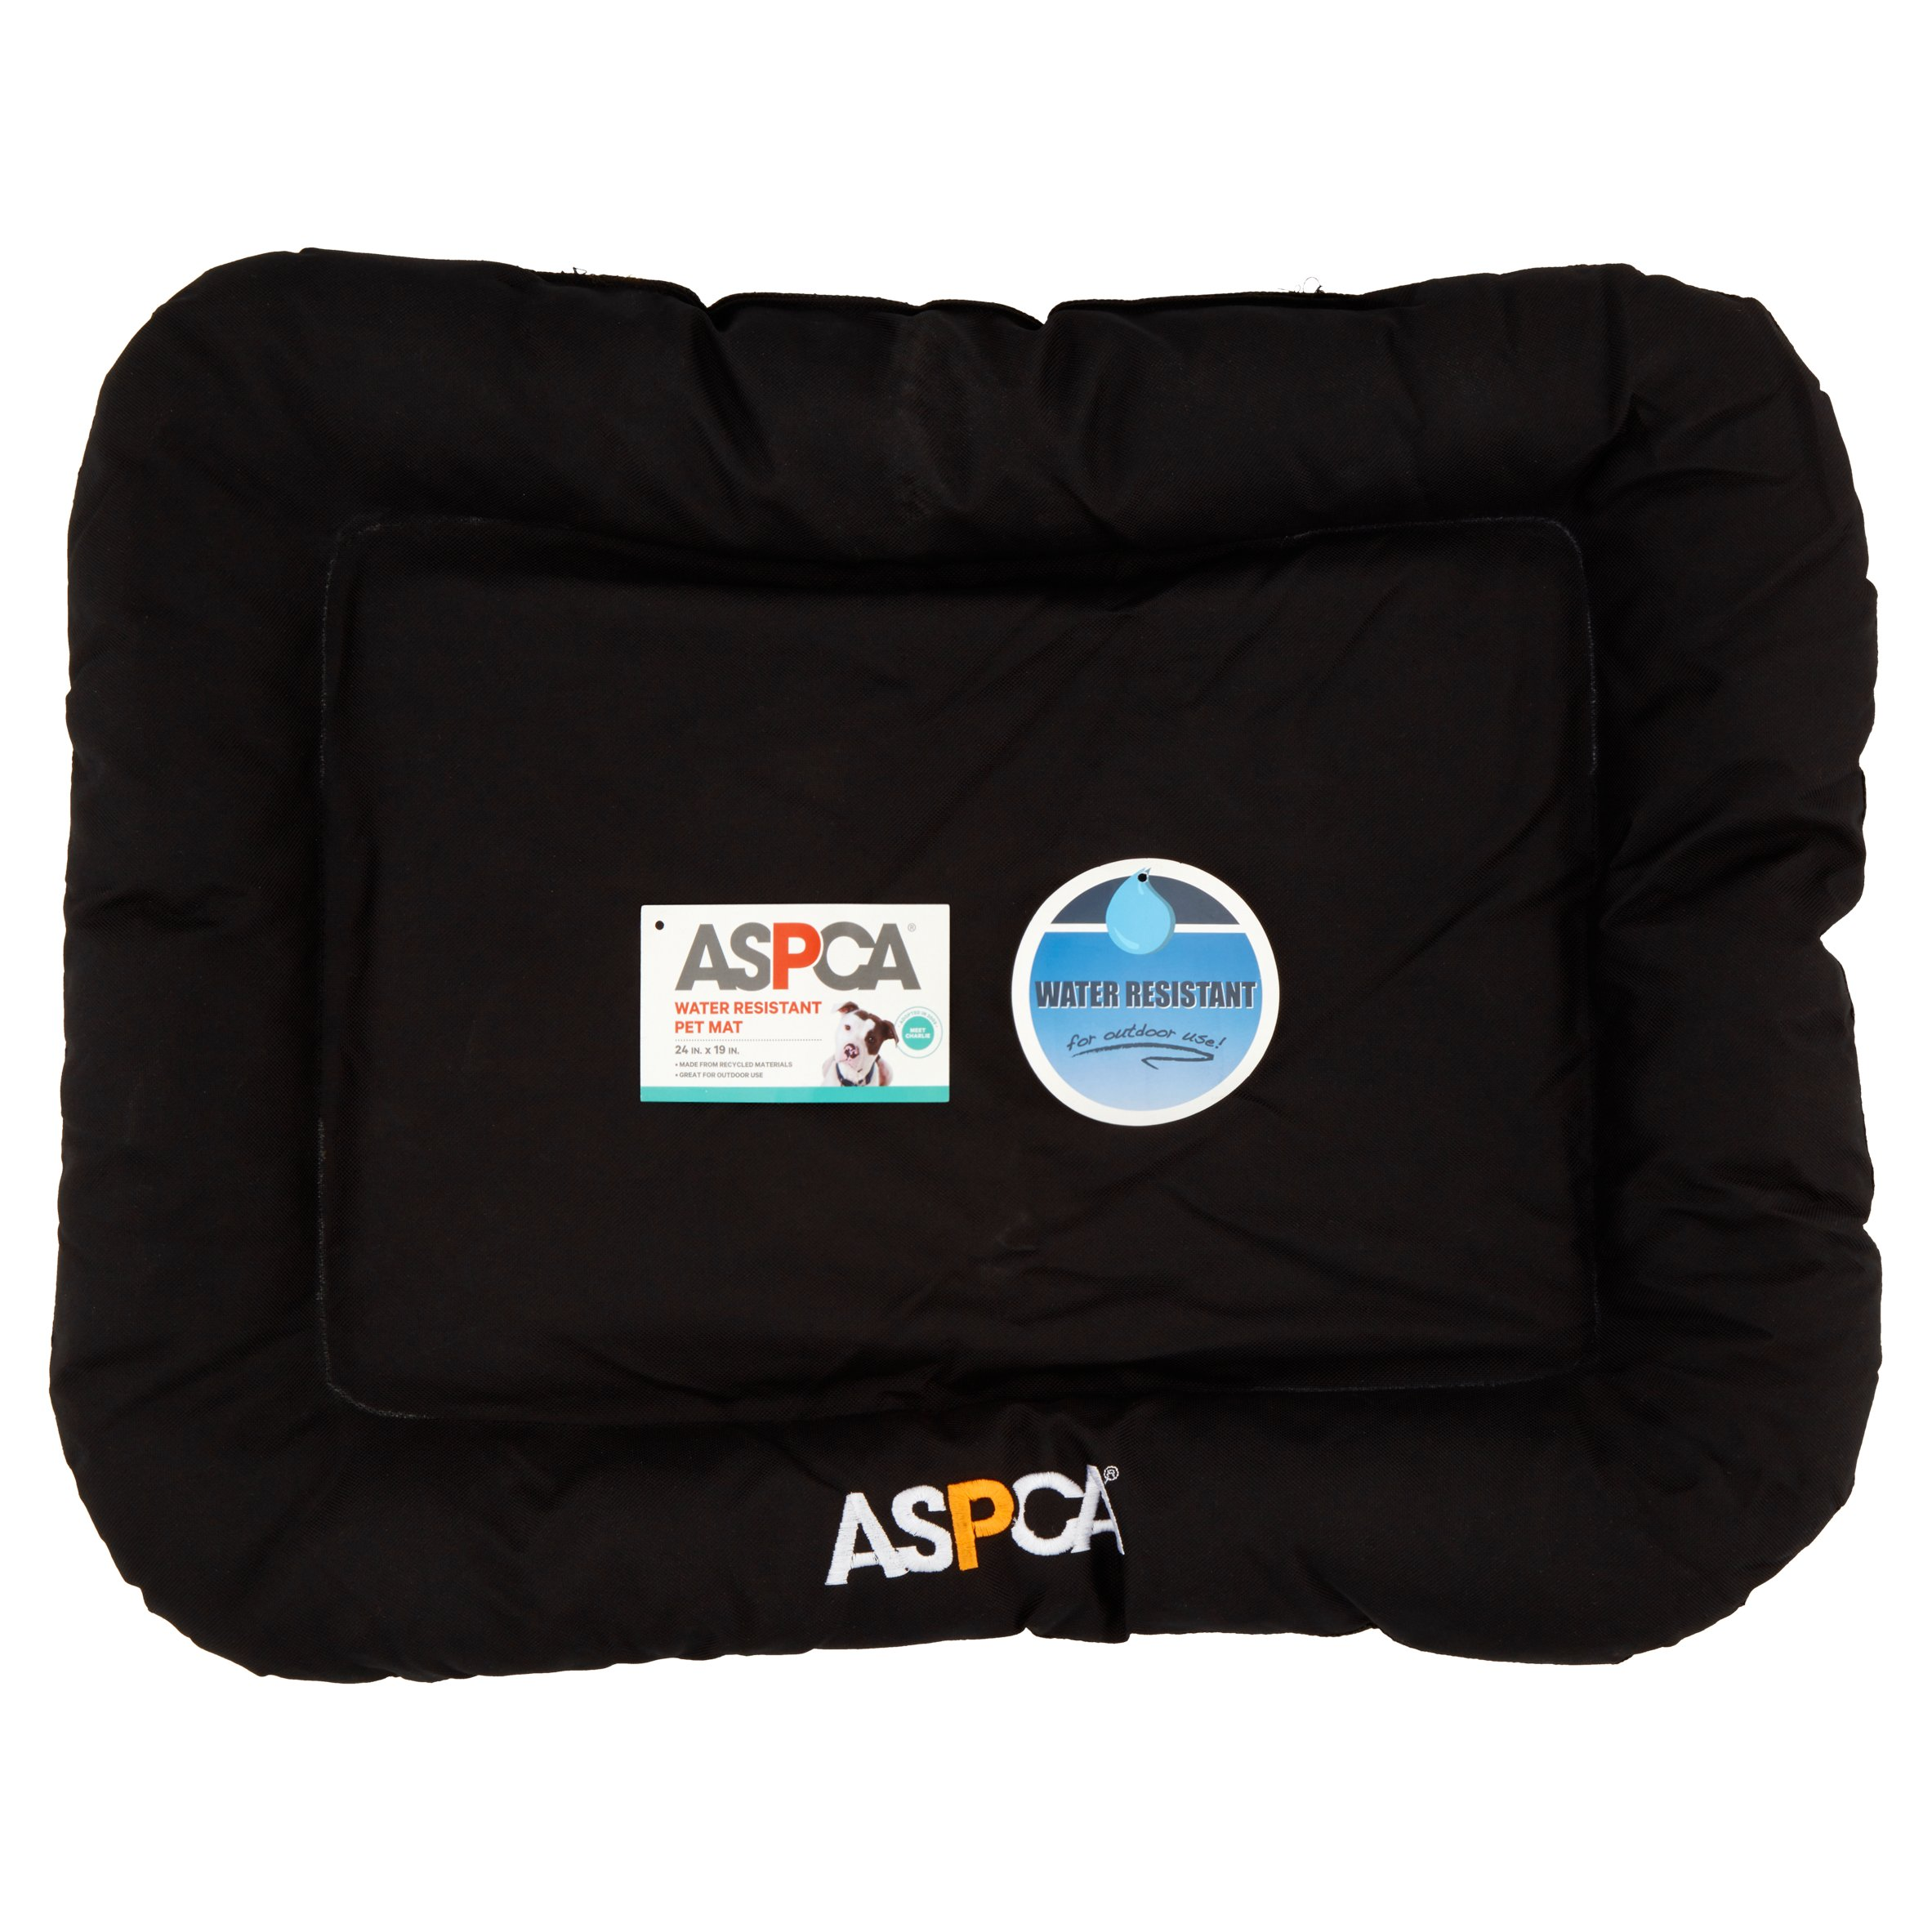 ASPCA Black Water Resistant Pet Mat